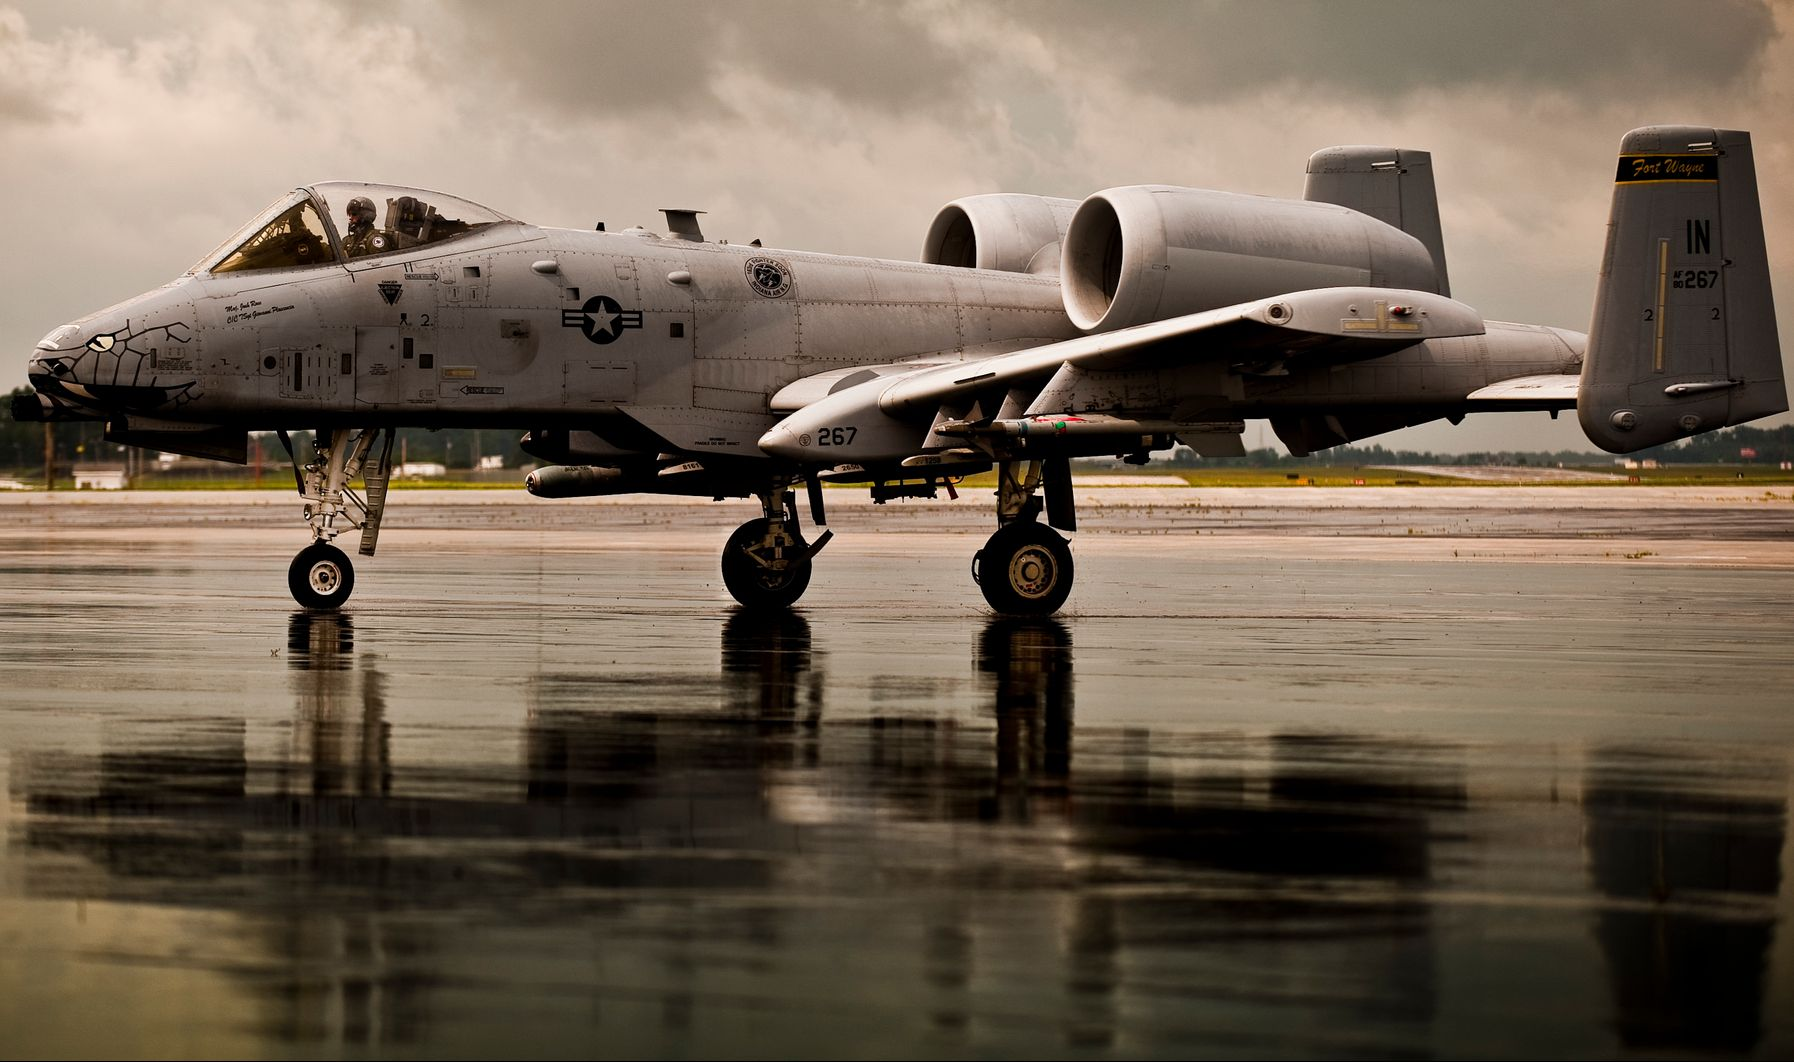 Back in 2014, the A-10 Warthog Crushed Its Enemies During a Crazy Wargame